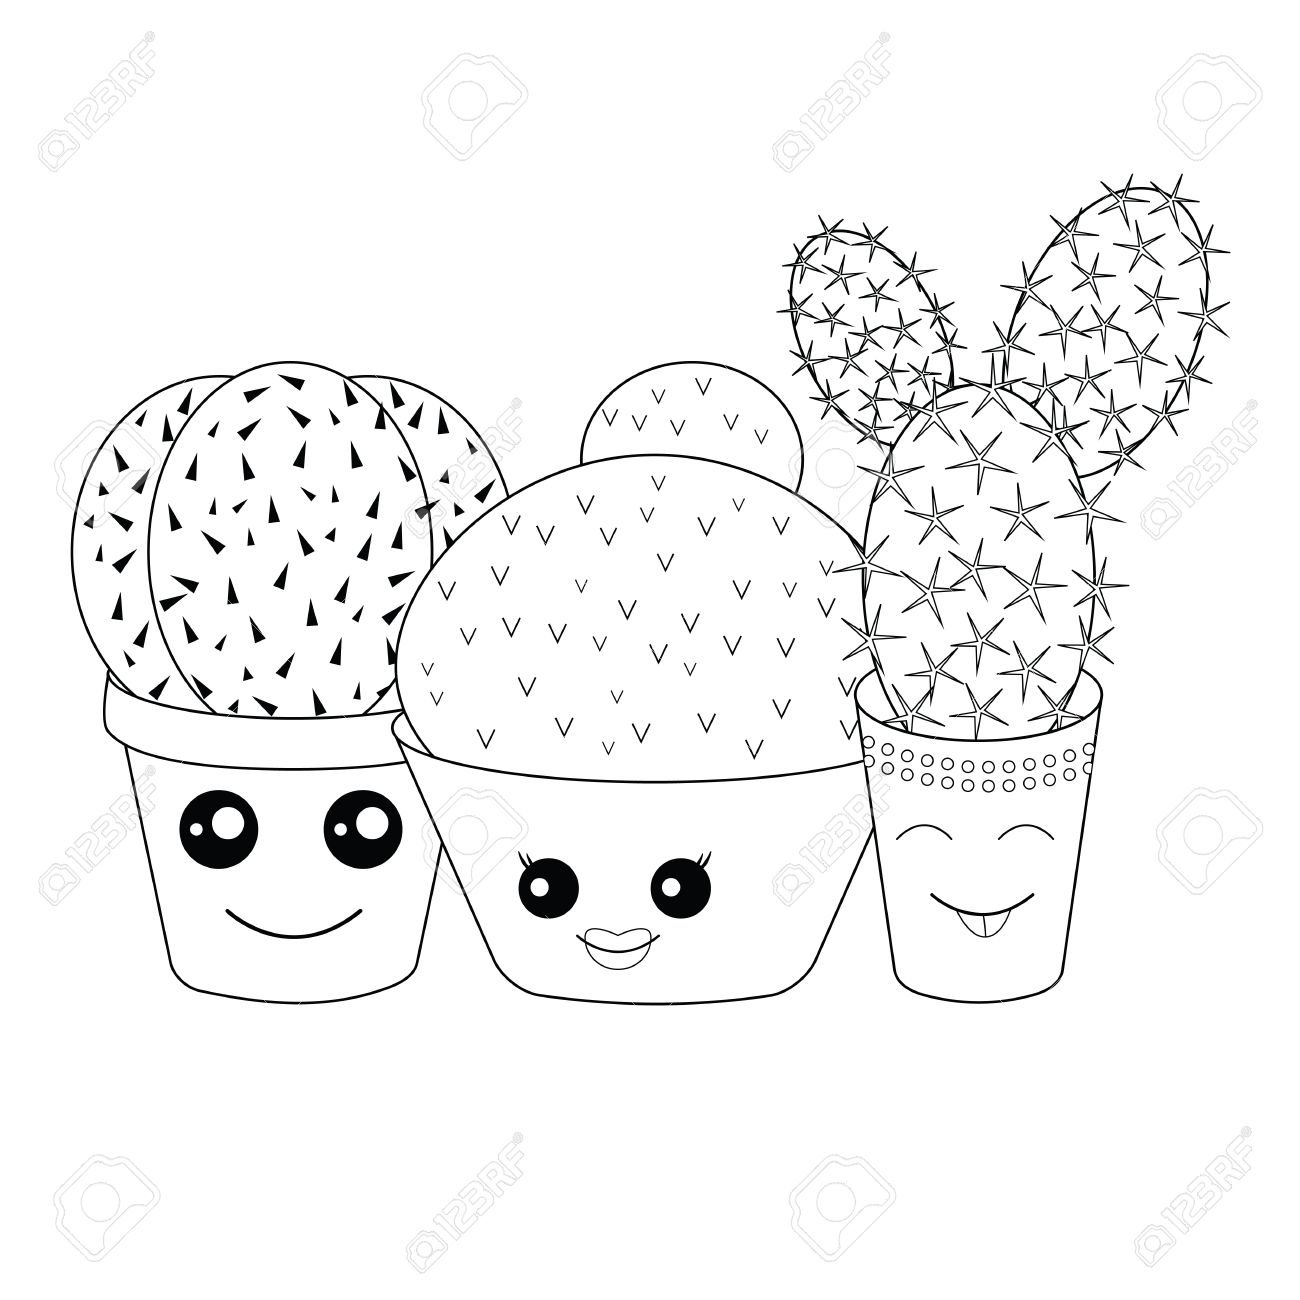 Coloring With Cacti.Coloring Page.Hilarious Family Of Cacti On ...